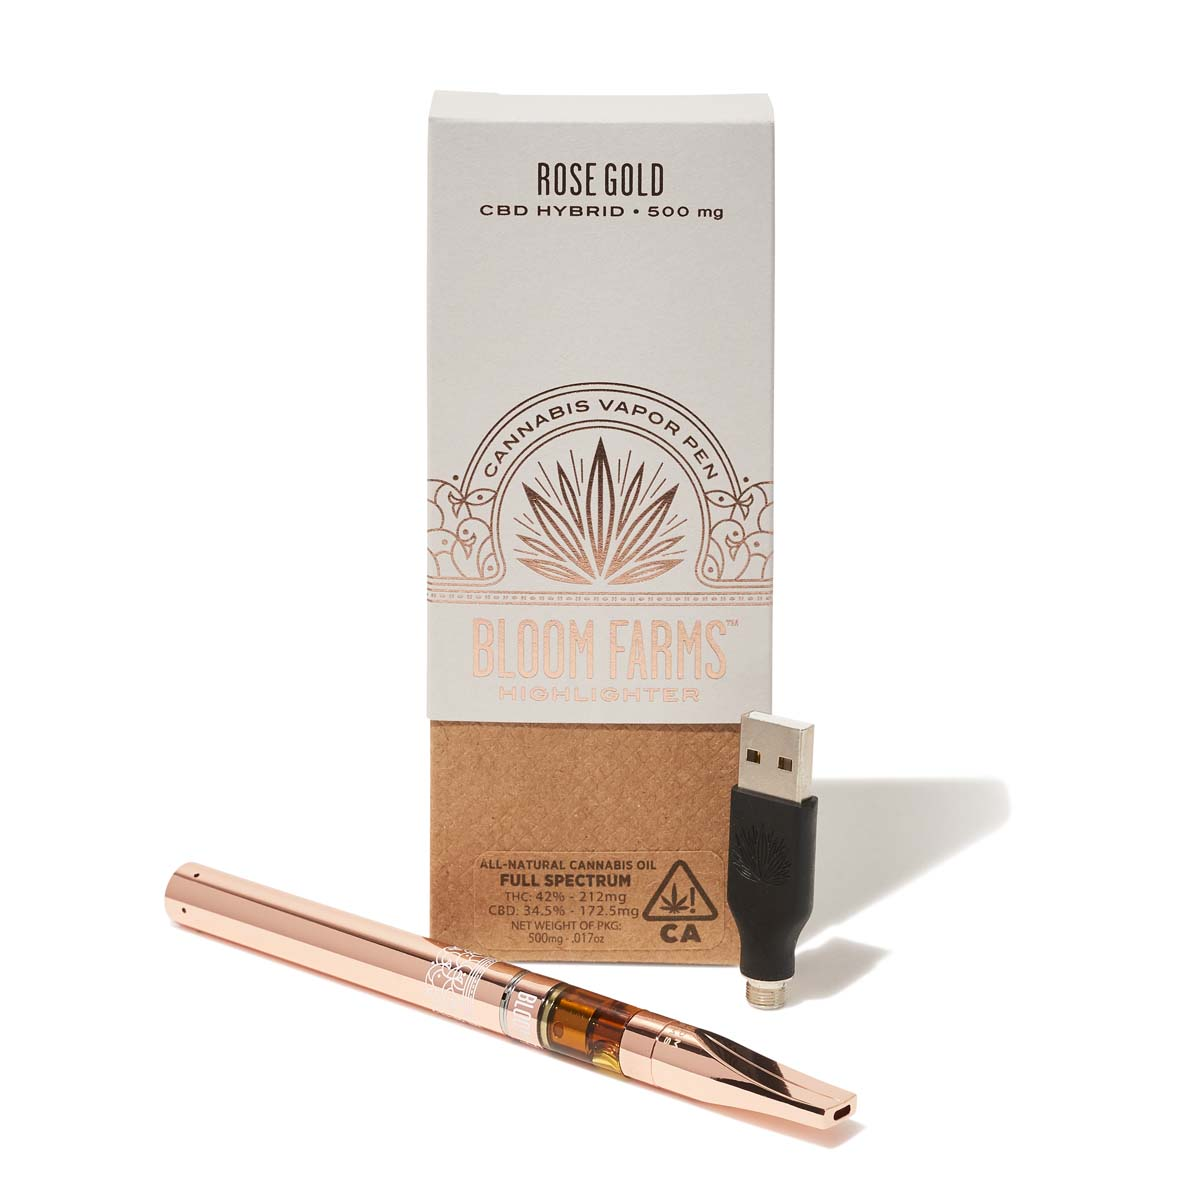 1 1 Rose Gold Vaporizer Collection Shop Sava